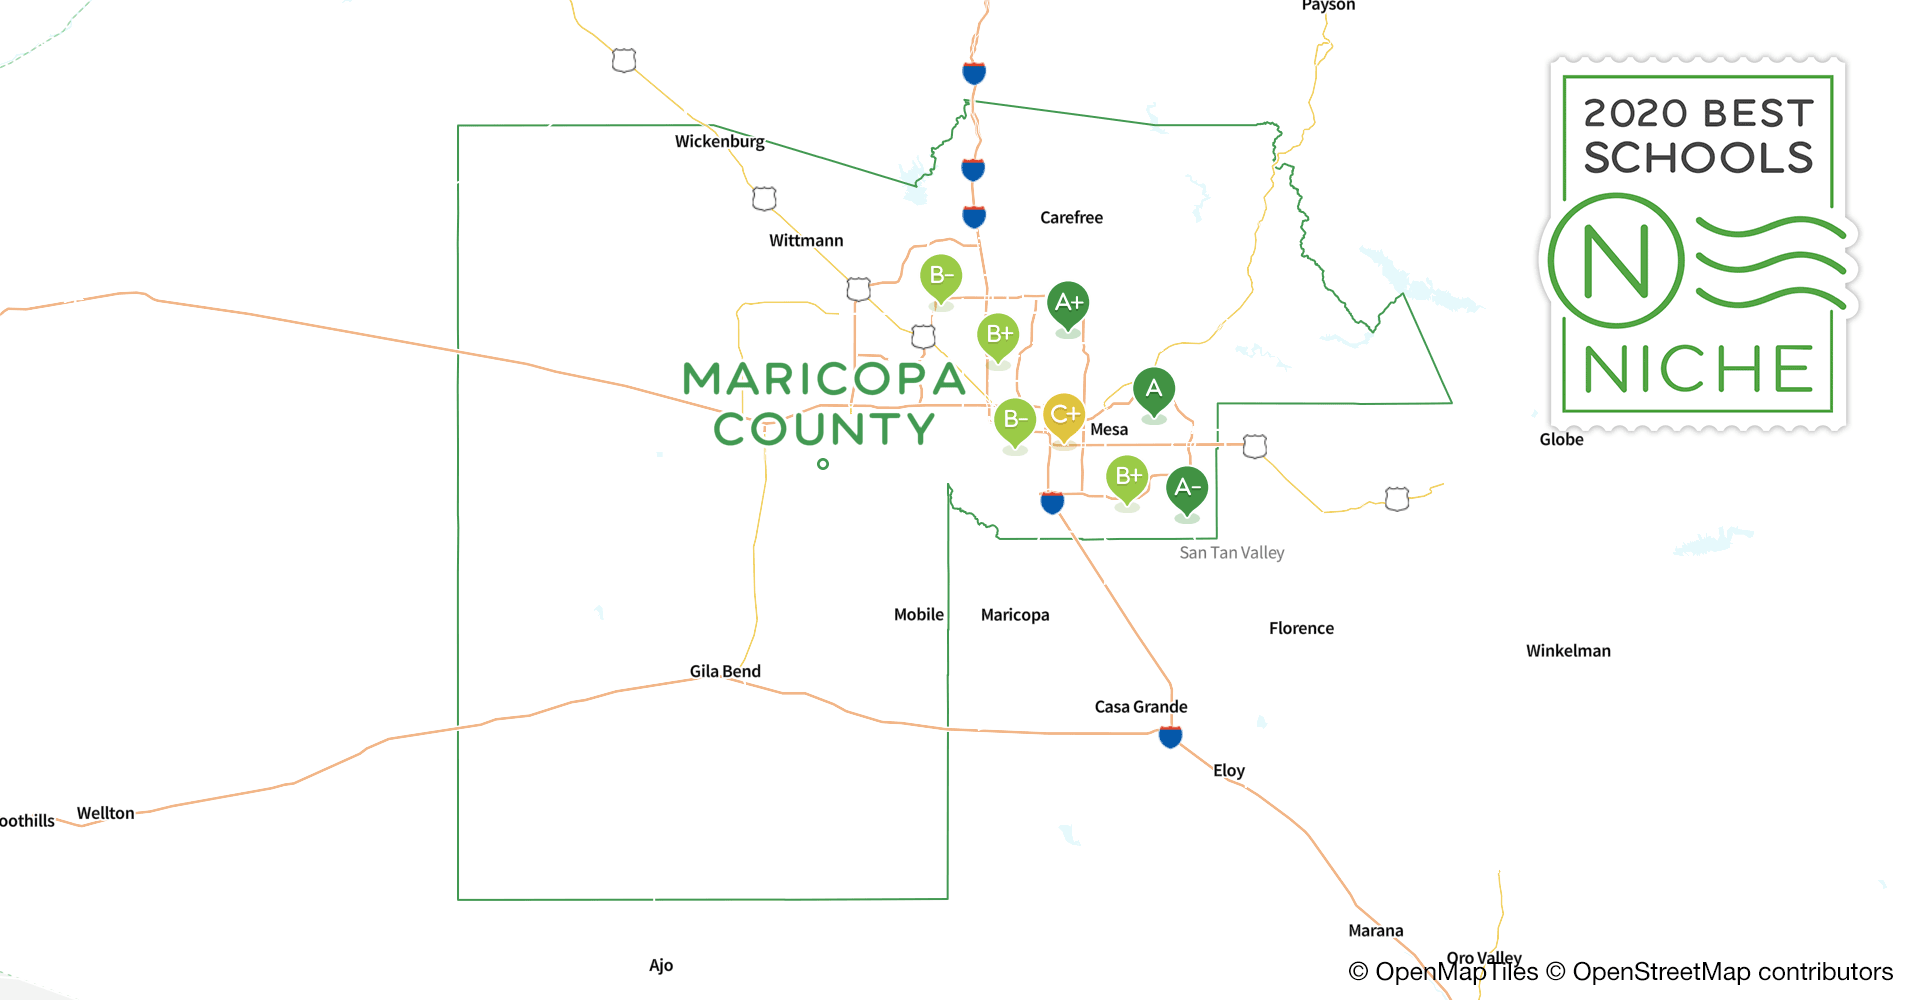 School Districts in Maricopa County, AZ - Niche